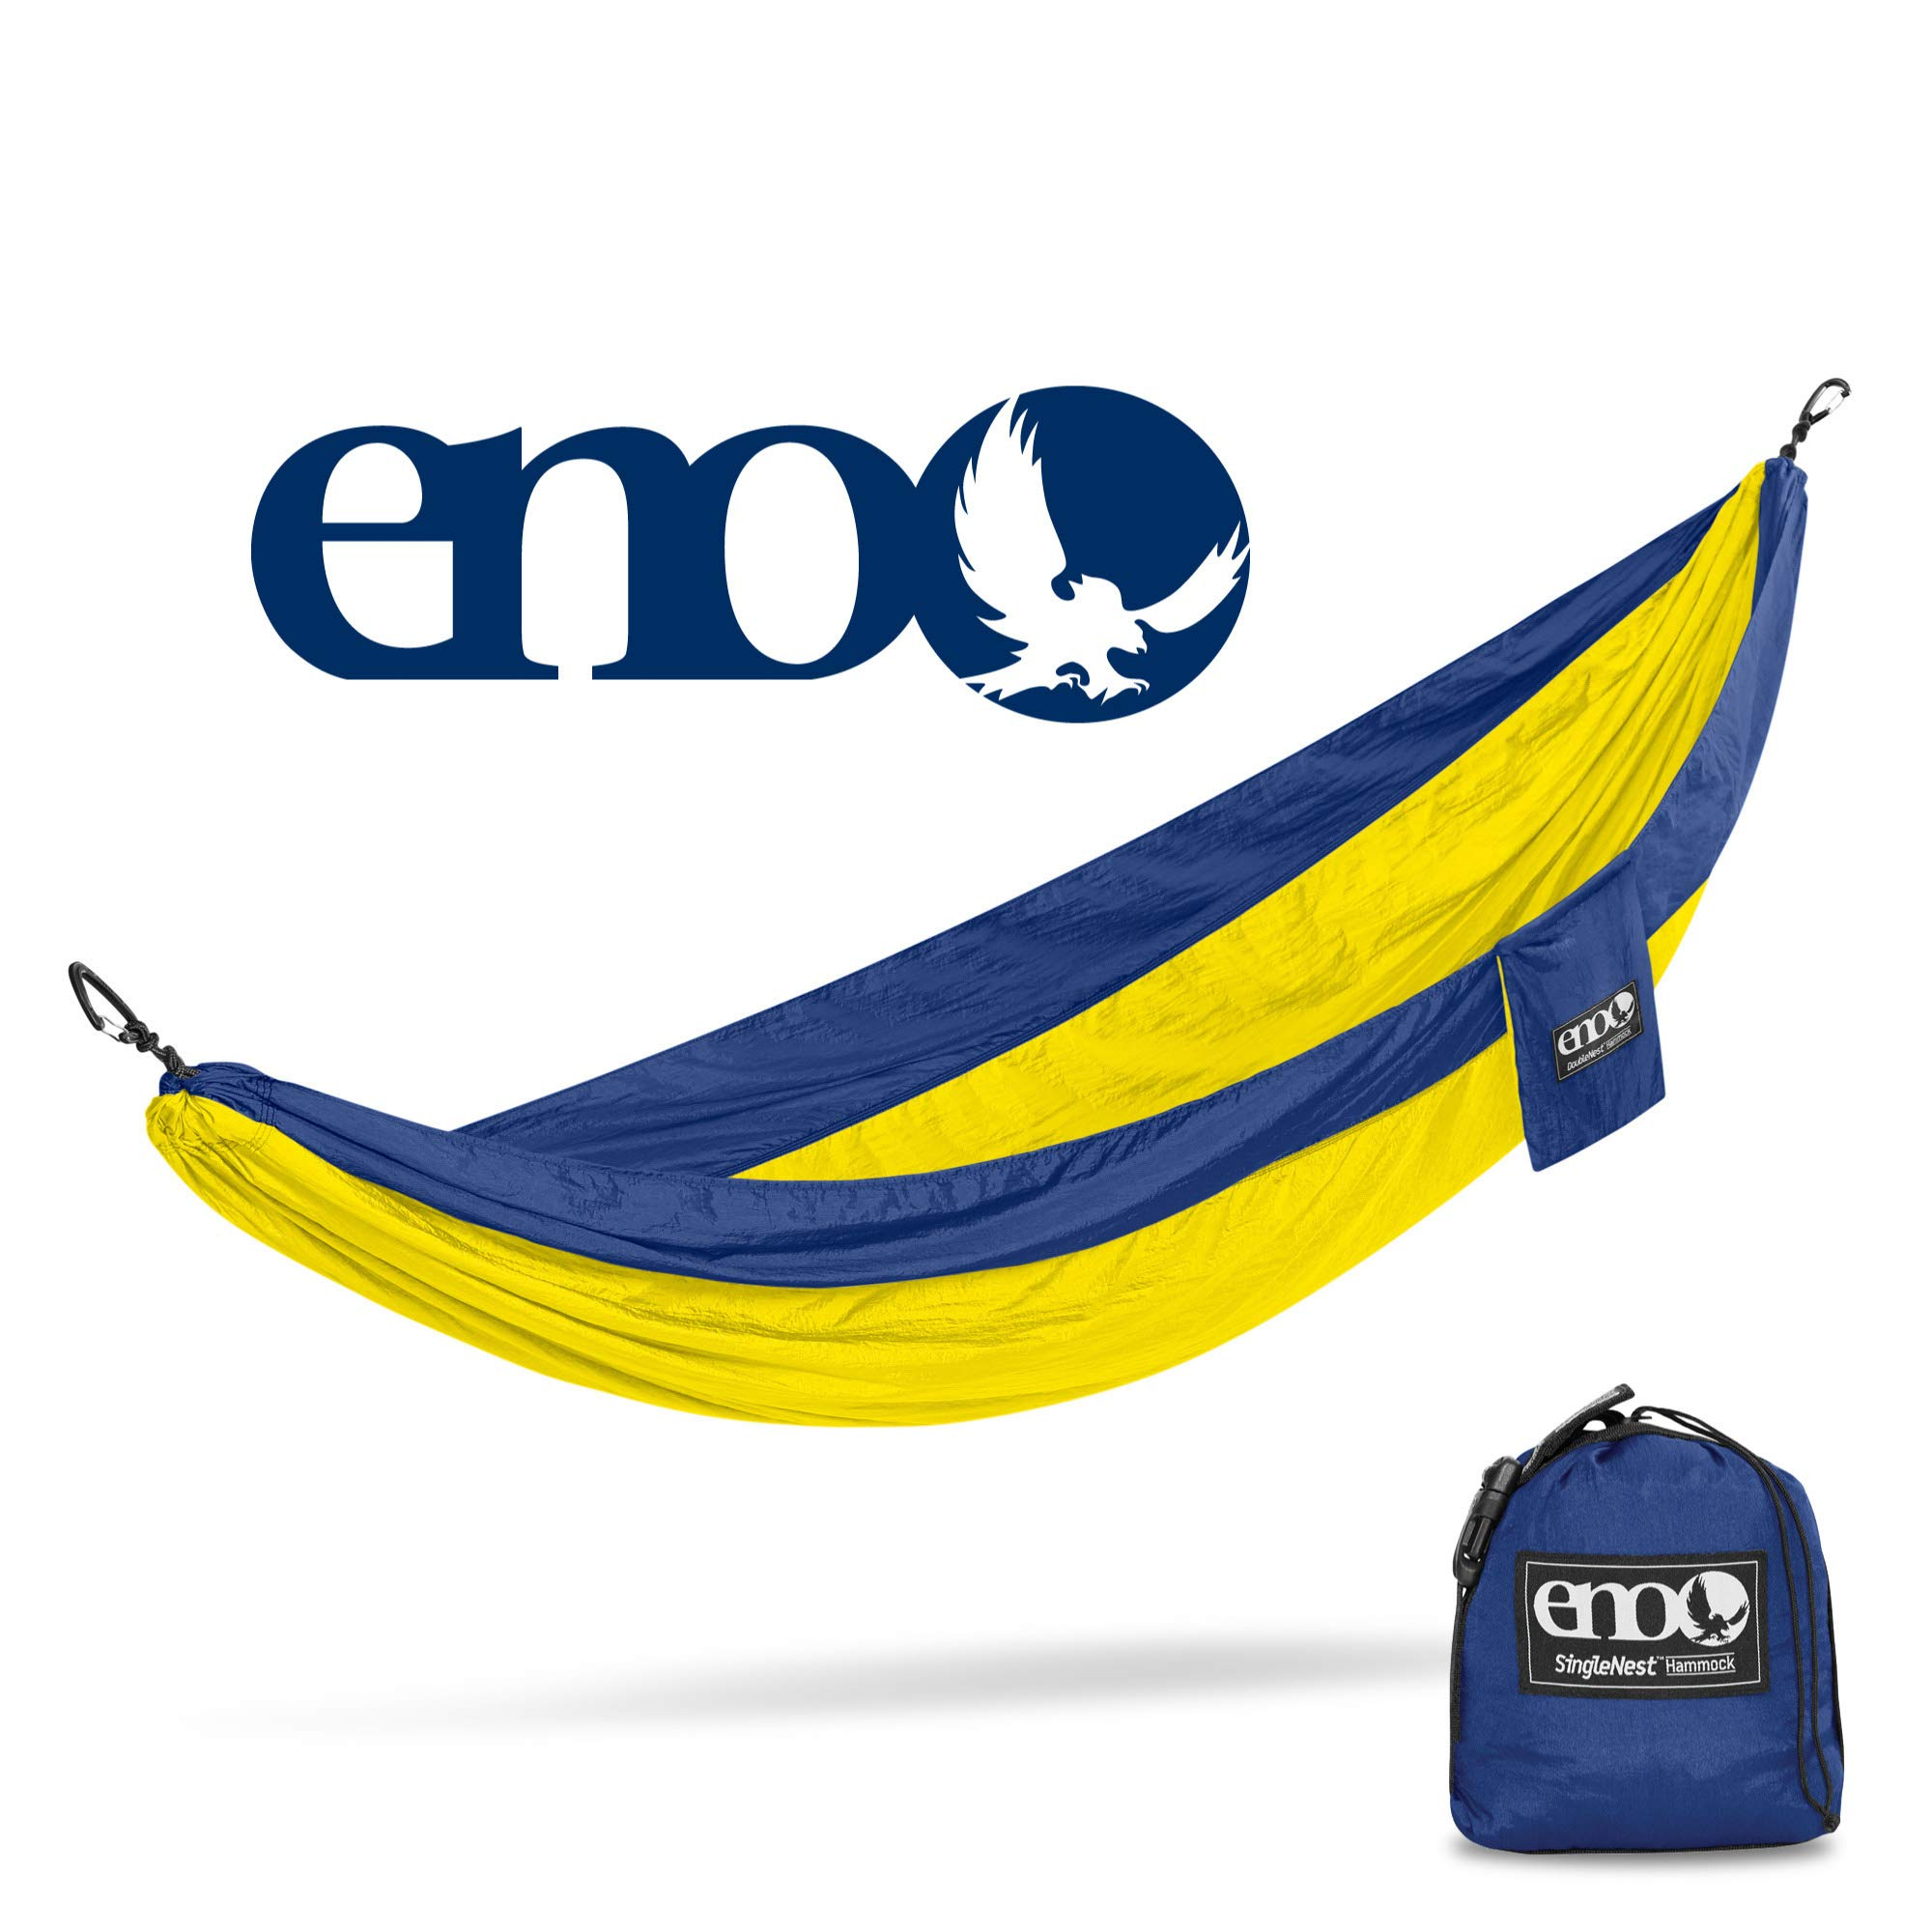 ENO - Eagles Nest Outfitters SingleNest Hammock, Portable Hammock for One, Sapphire/Yellow by ENO